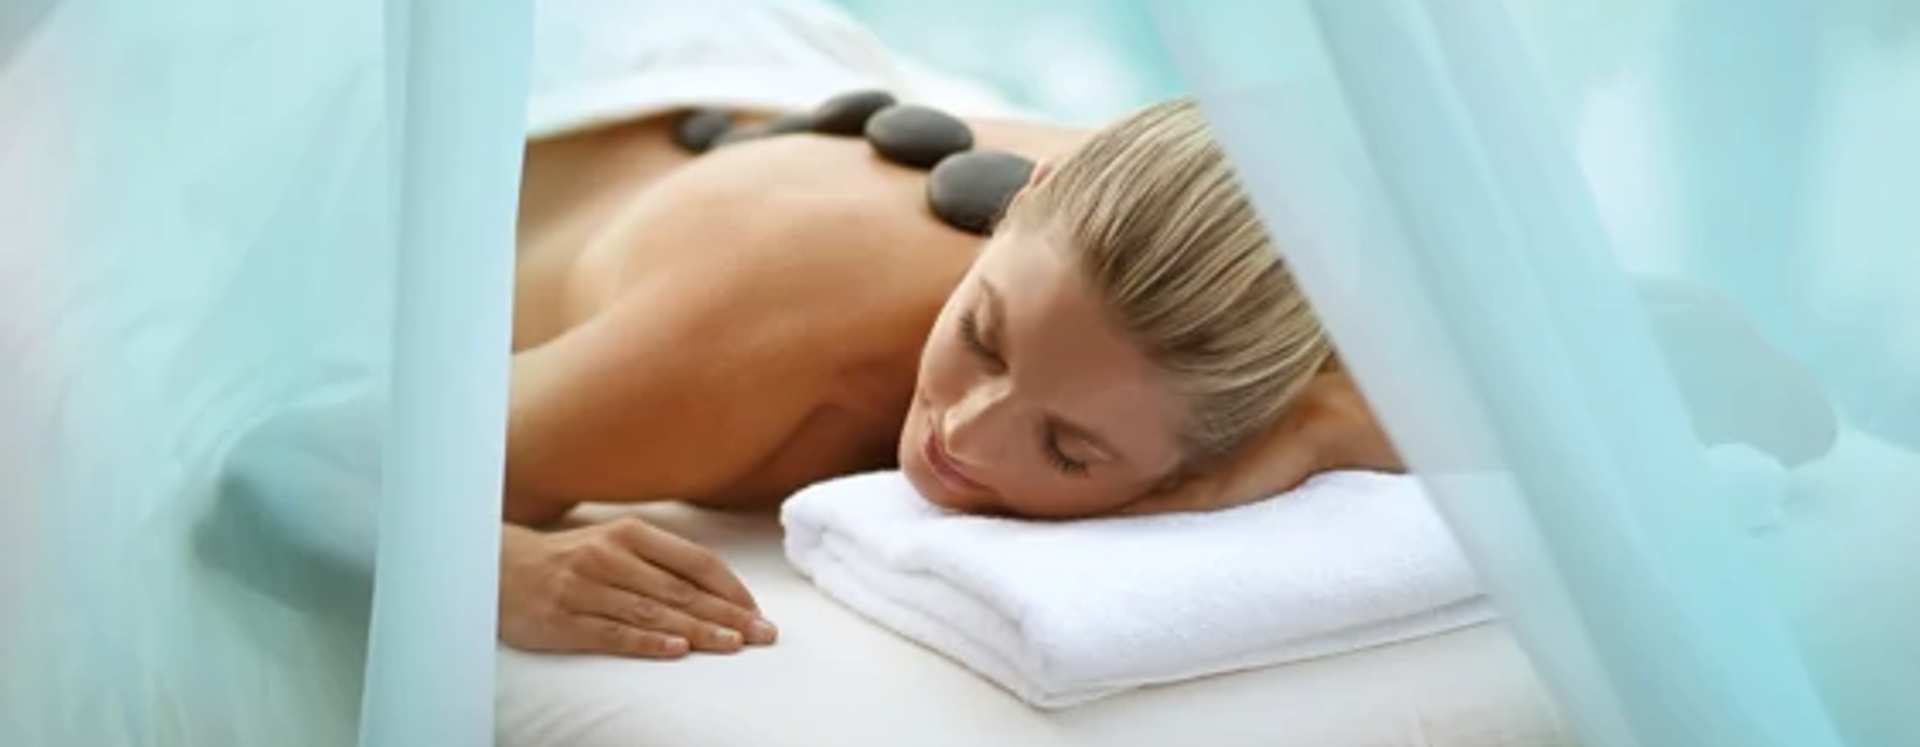 A woman relaxing at a spa while enjoying a hot stone massage